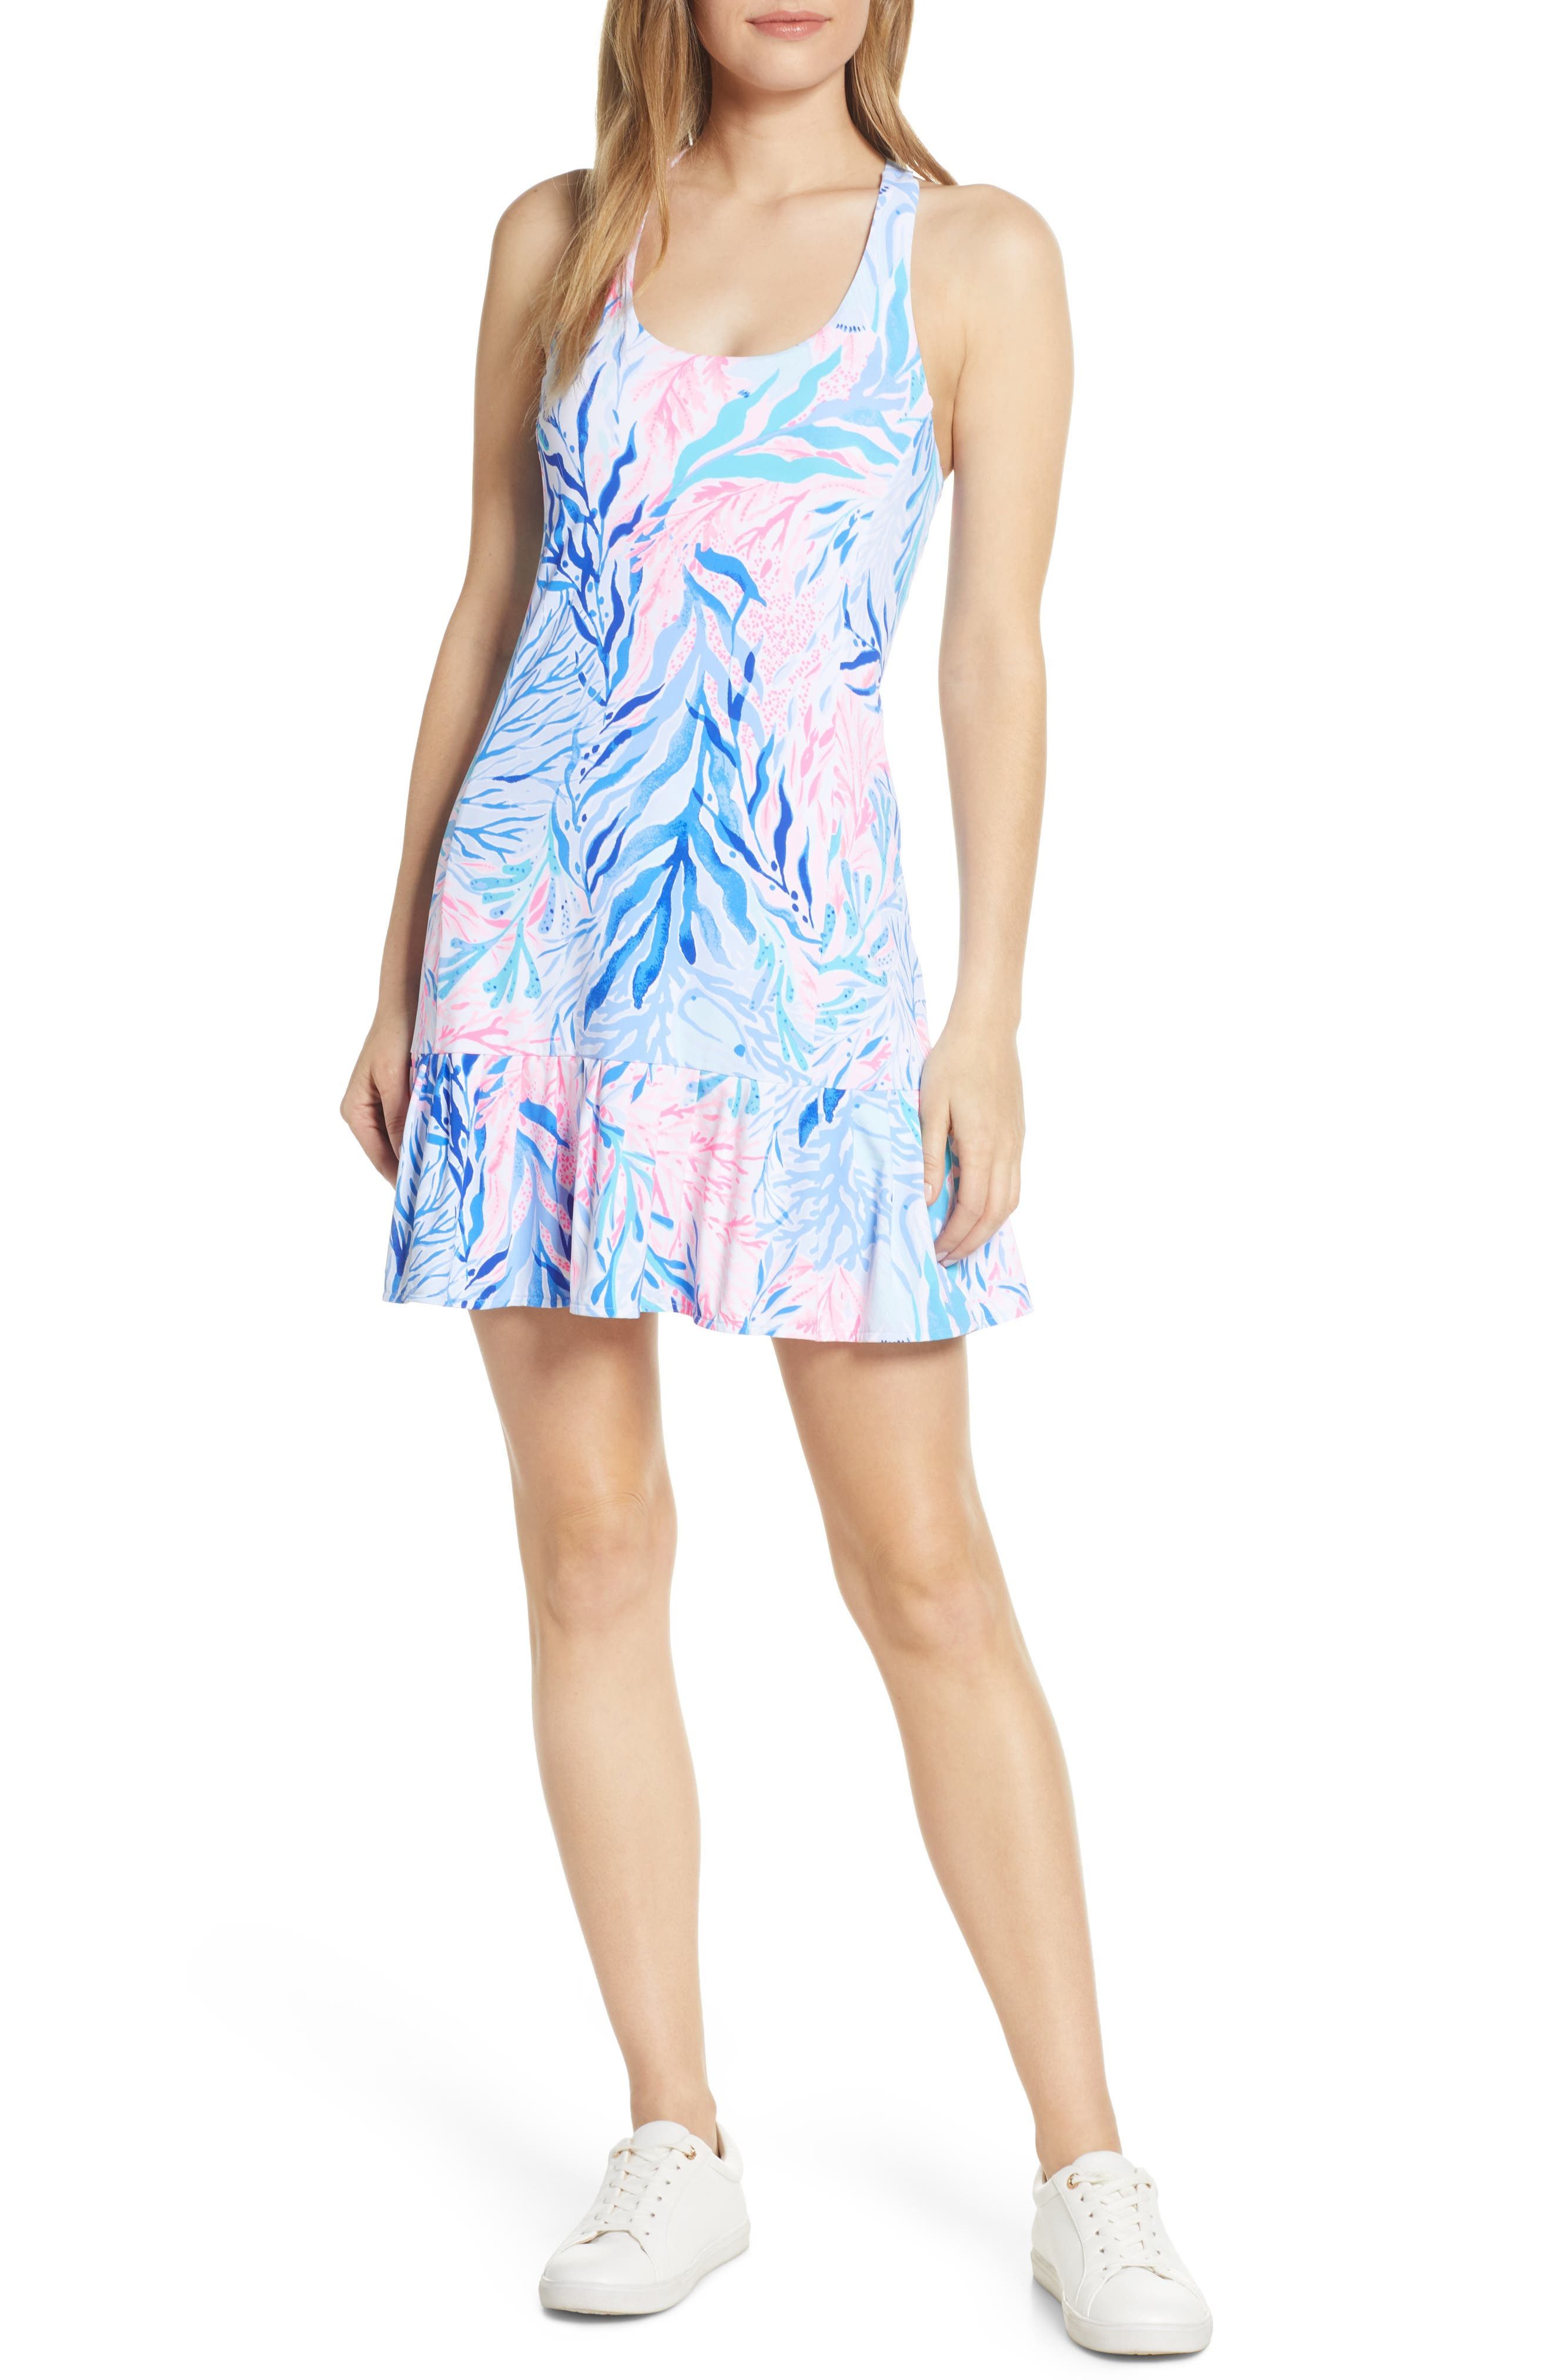 Luxletic Meryl Upf 50+ Ace Tennis Dress & Shorts Set by Lilly Pulitzer®